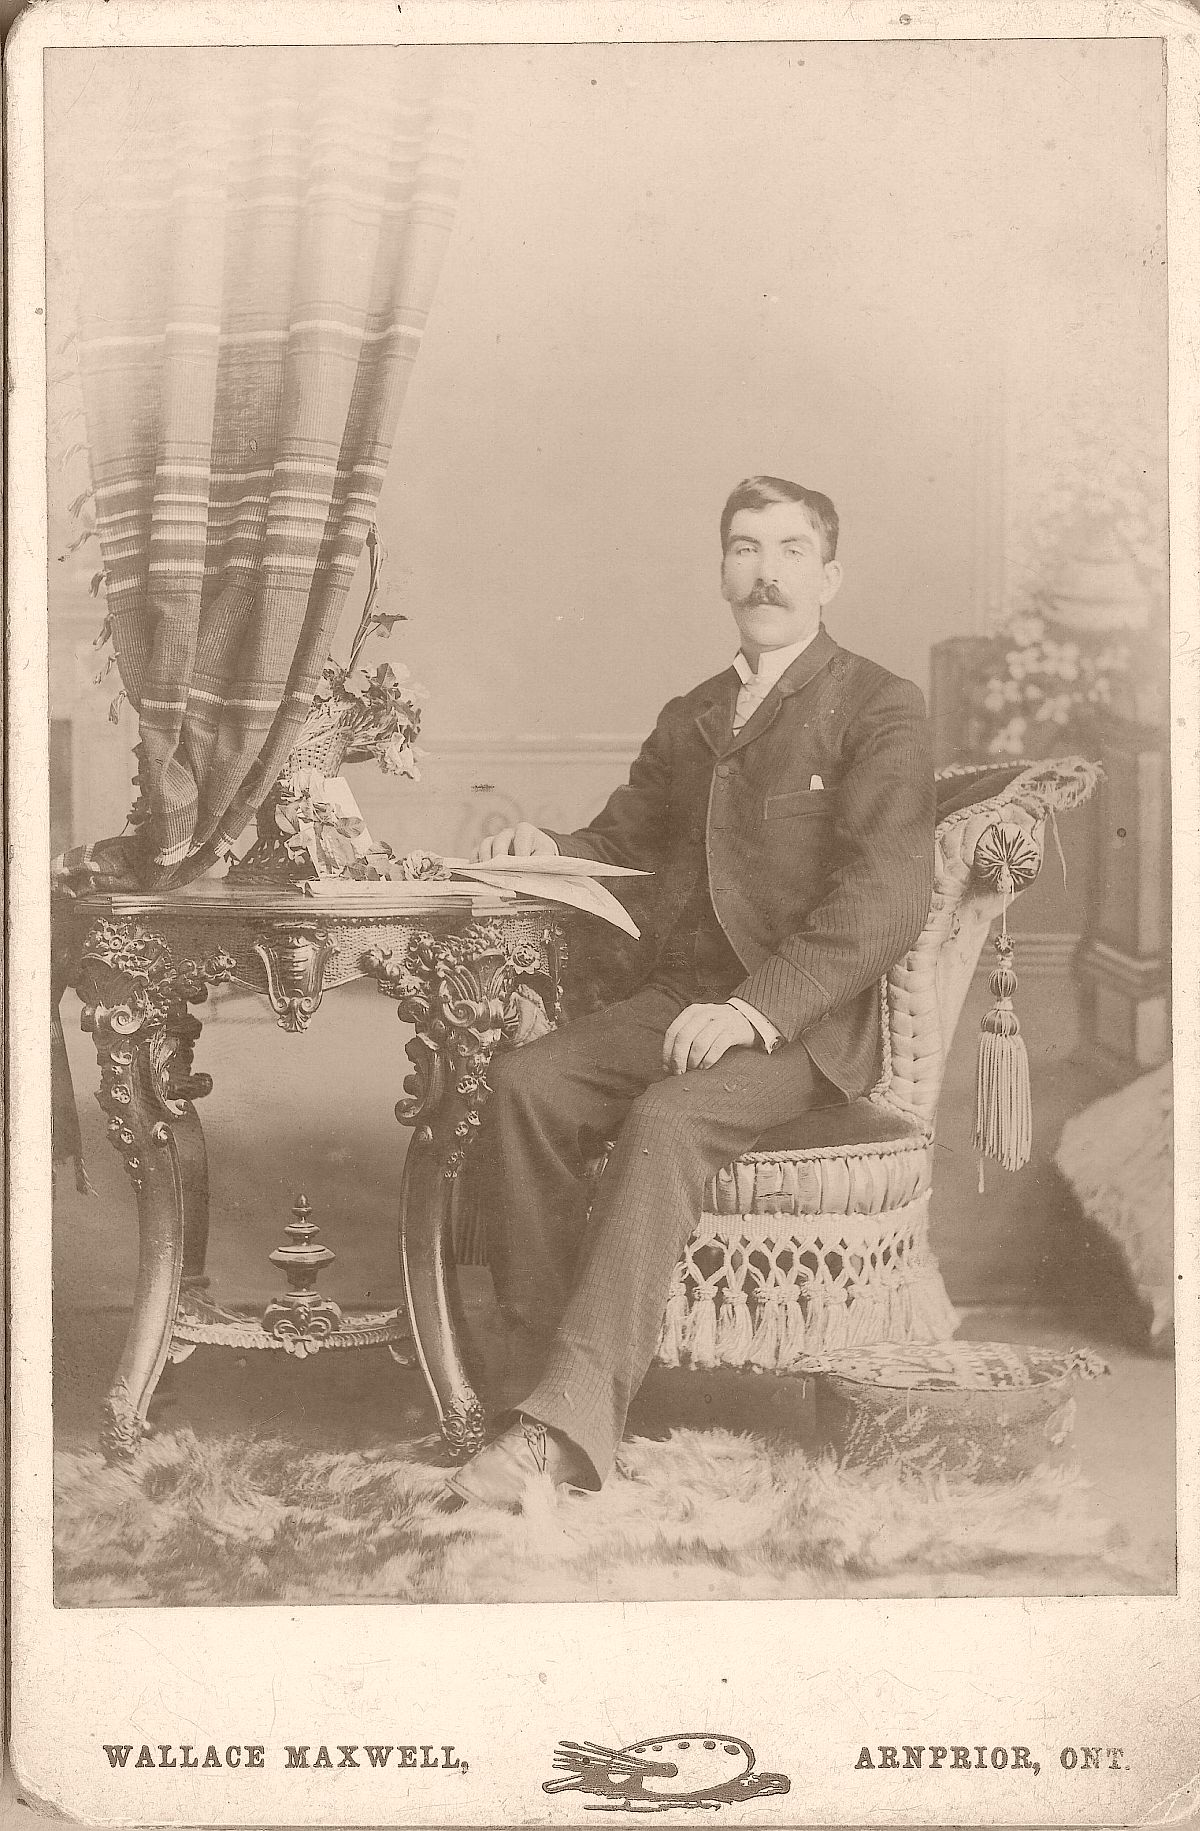 cabinet-cards-1870s-to-1880s-vintage-19th-century-victorian-era-45